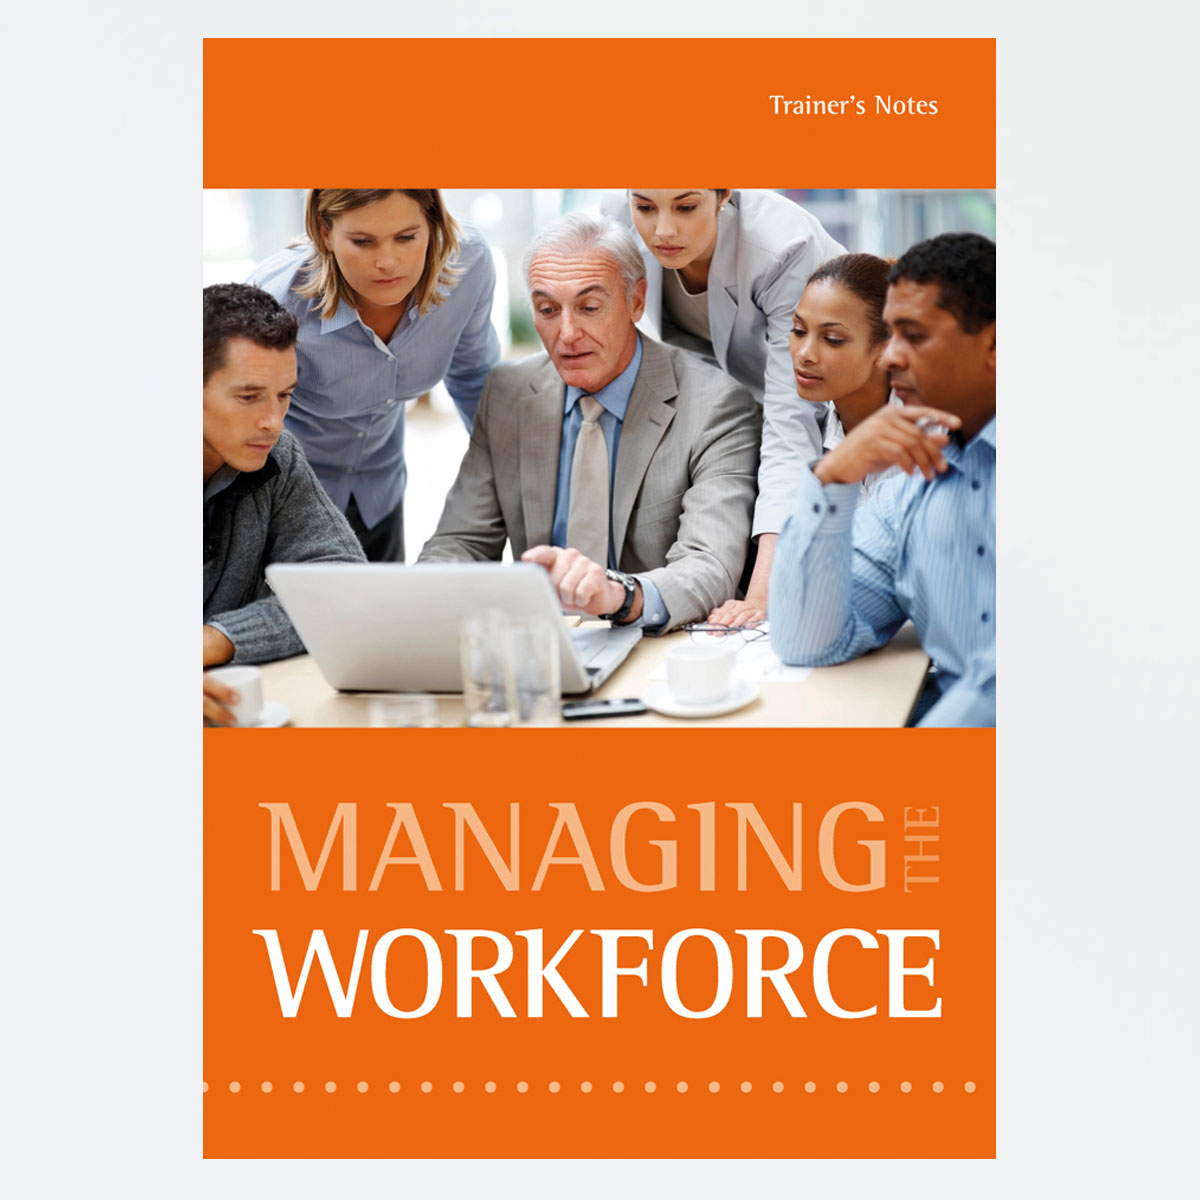 Managing the Workforce